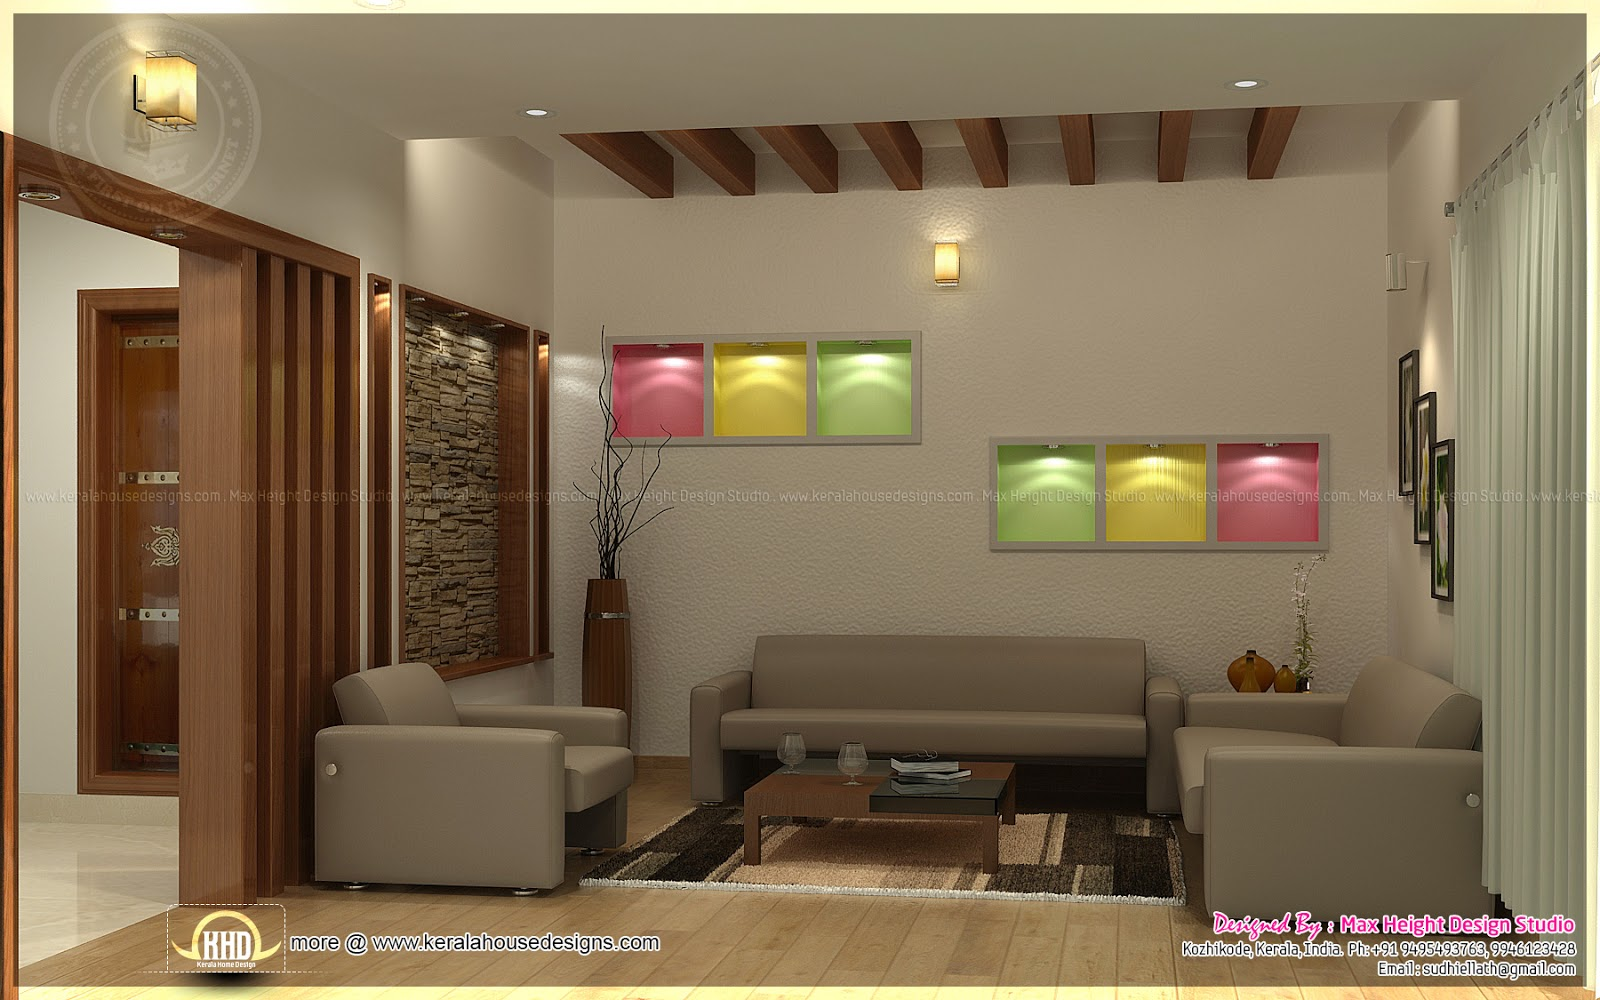 Beautiful interior ideas for home kerala home design and for Interior designs for homes pictures